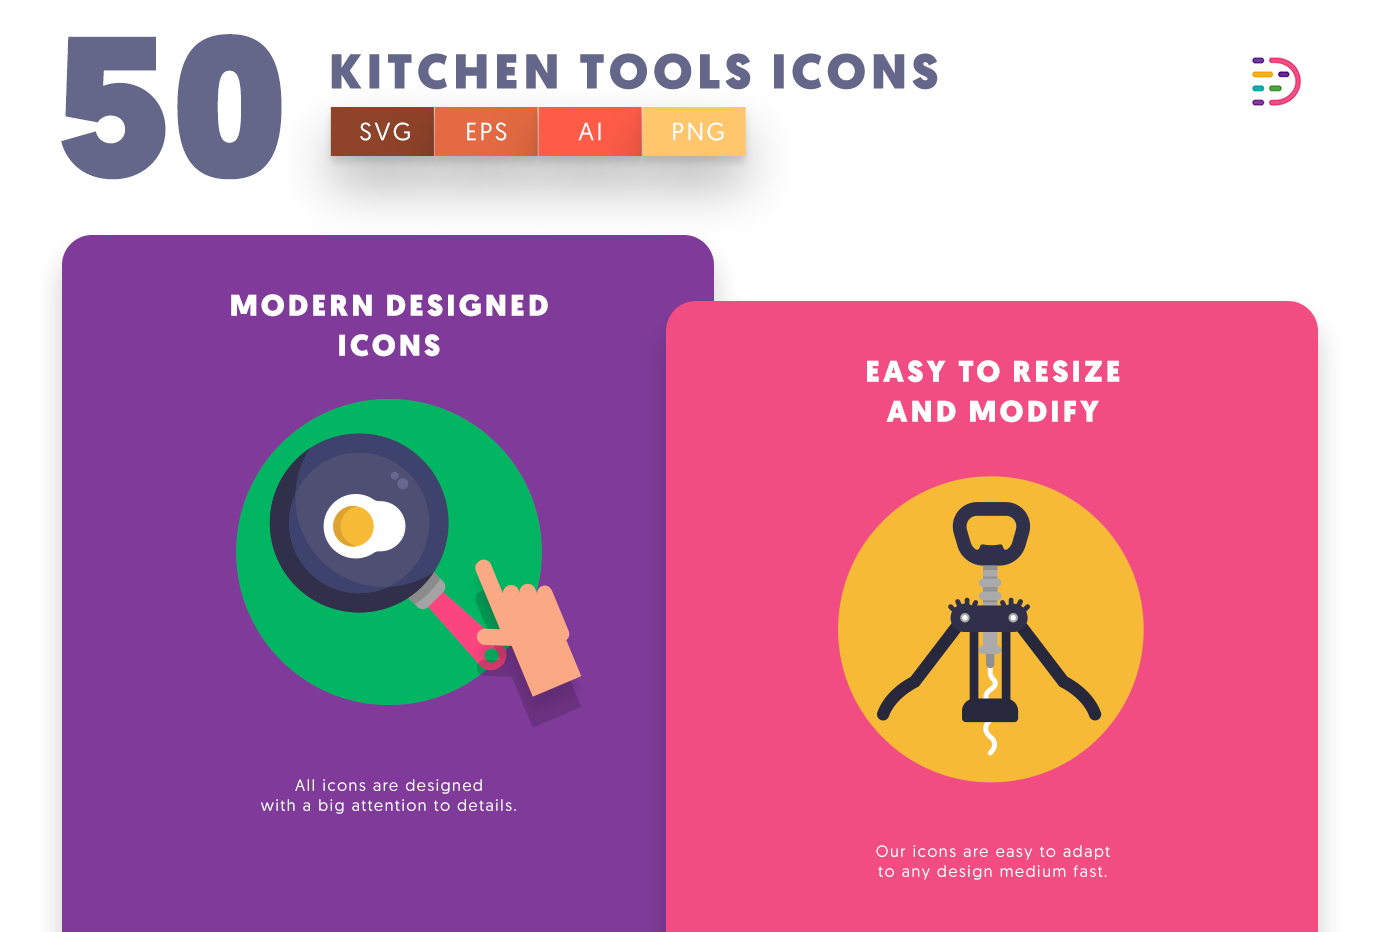 Kitchen Tools icons png/svg/eps